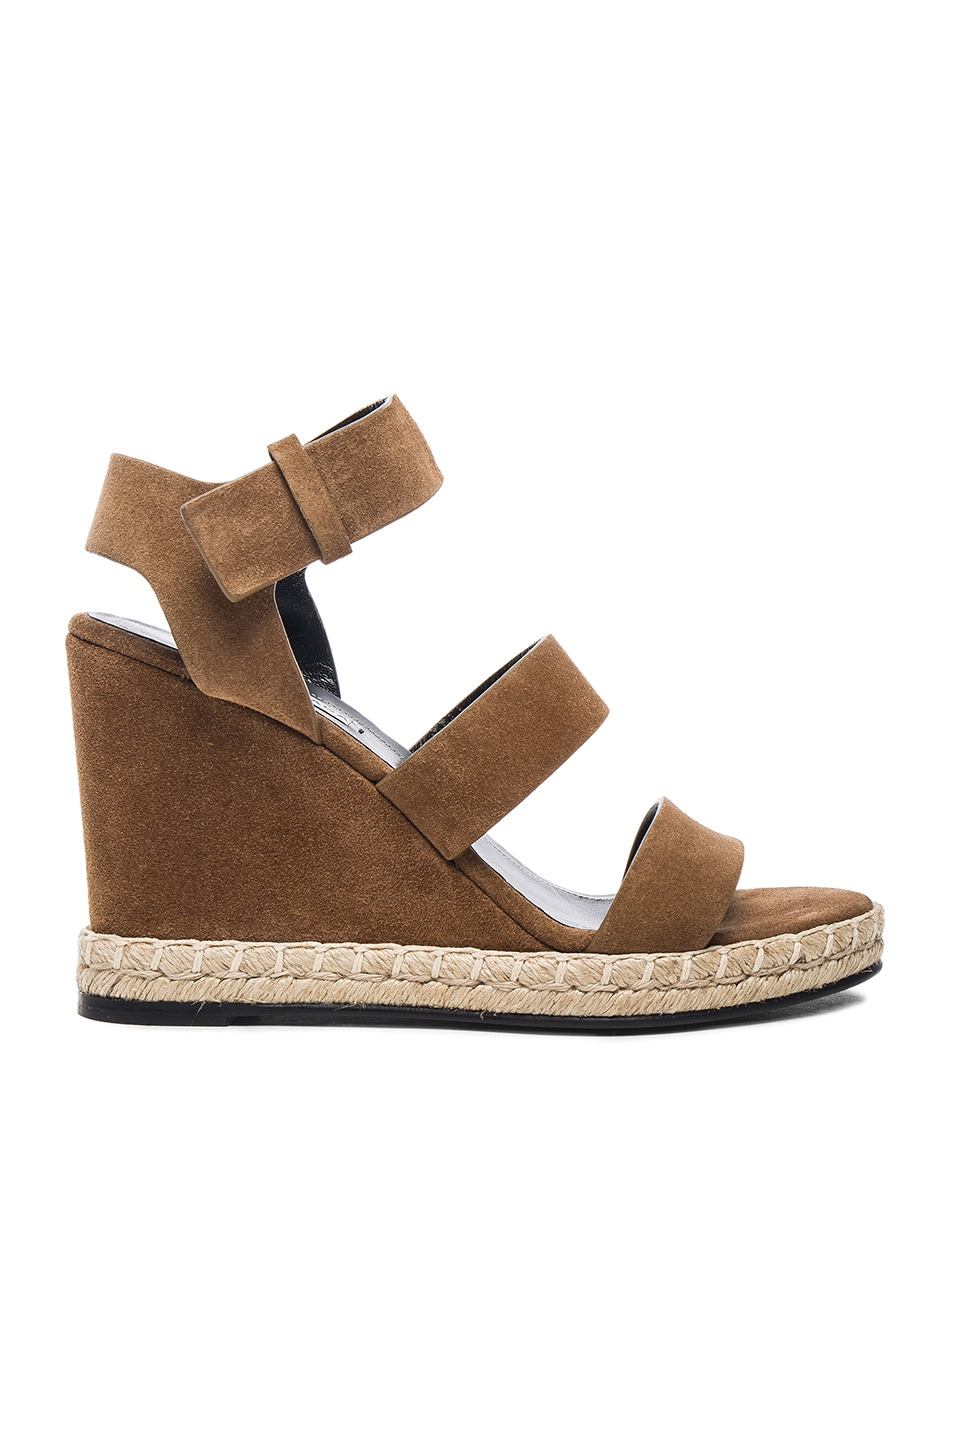 Image 1 of Balenciaga Suede Wedge Sandals in Noisette